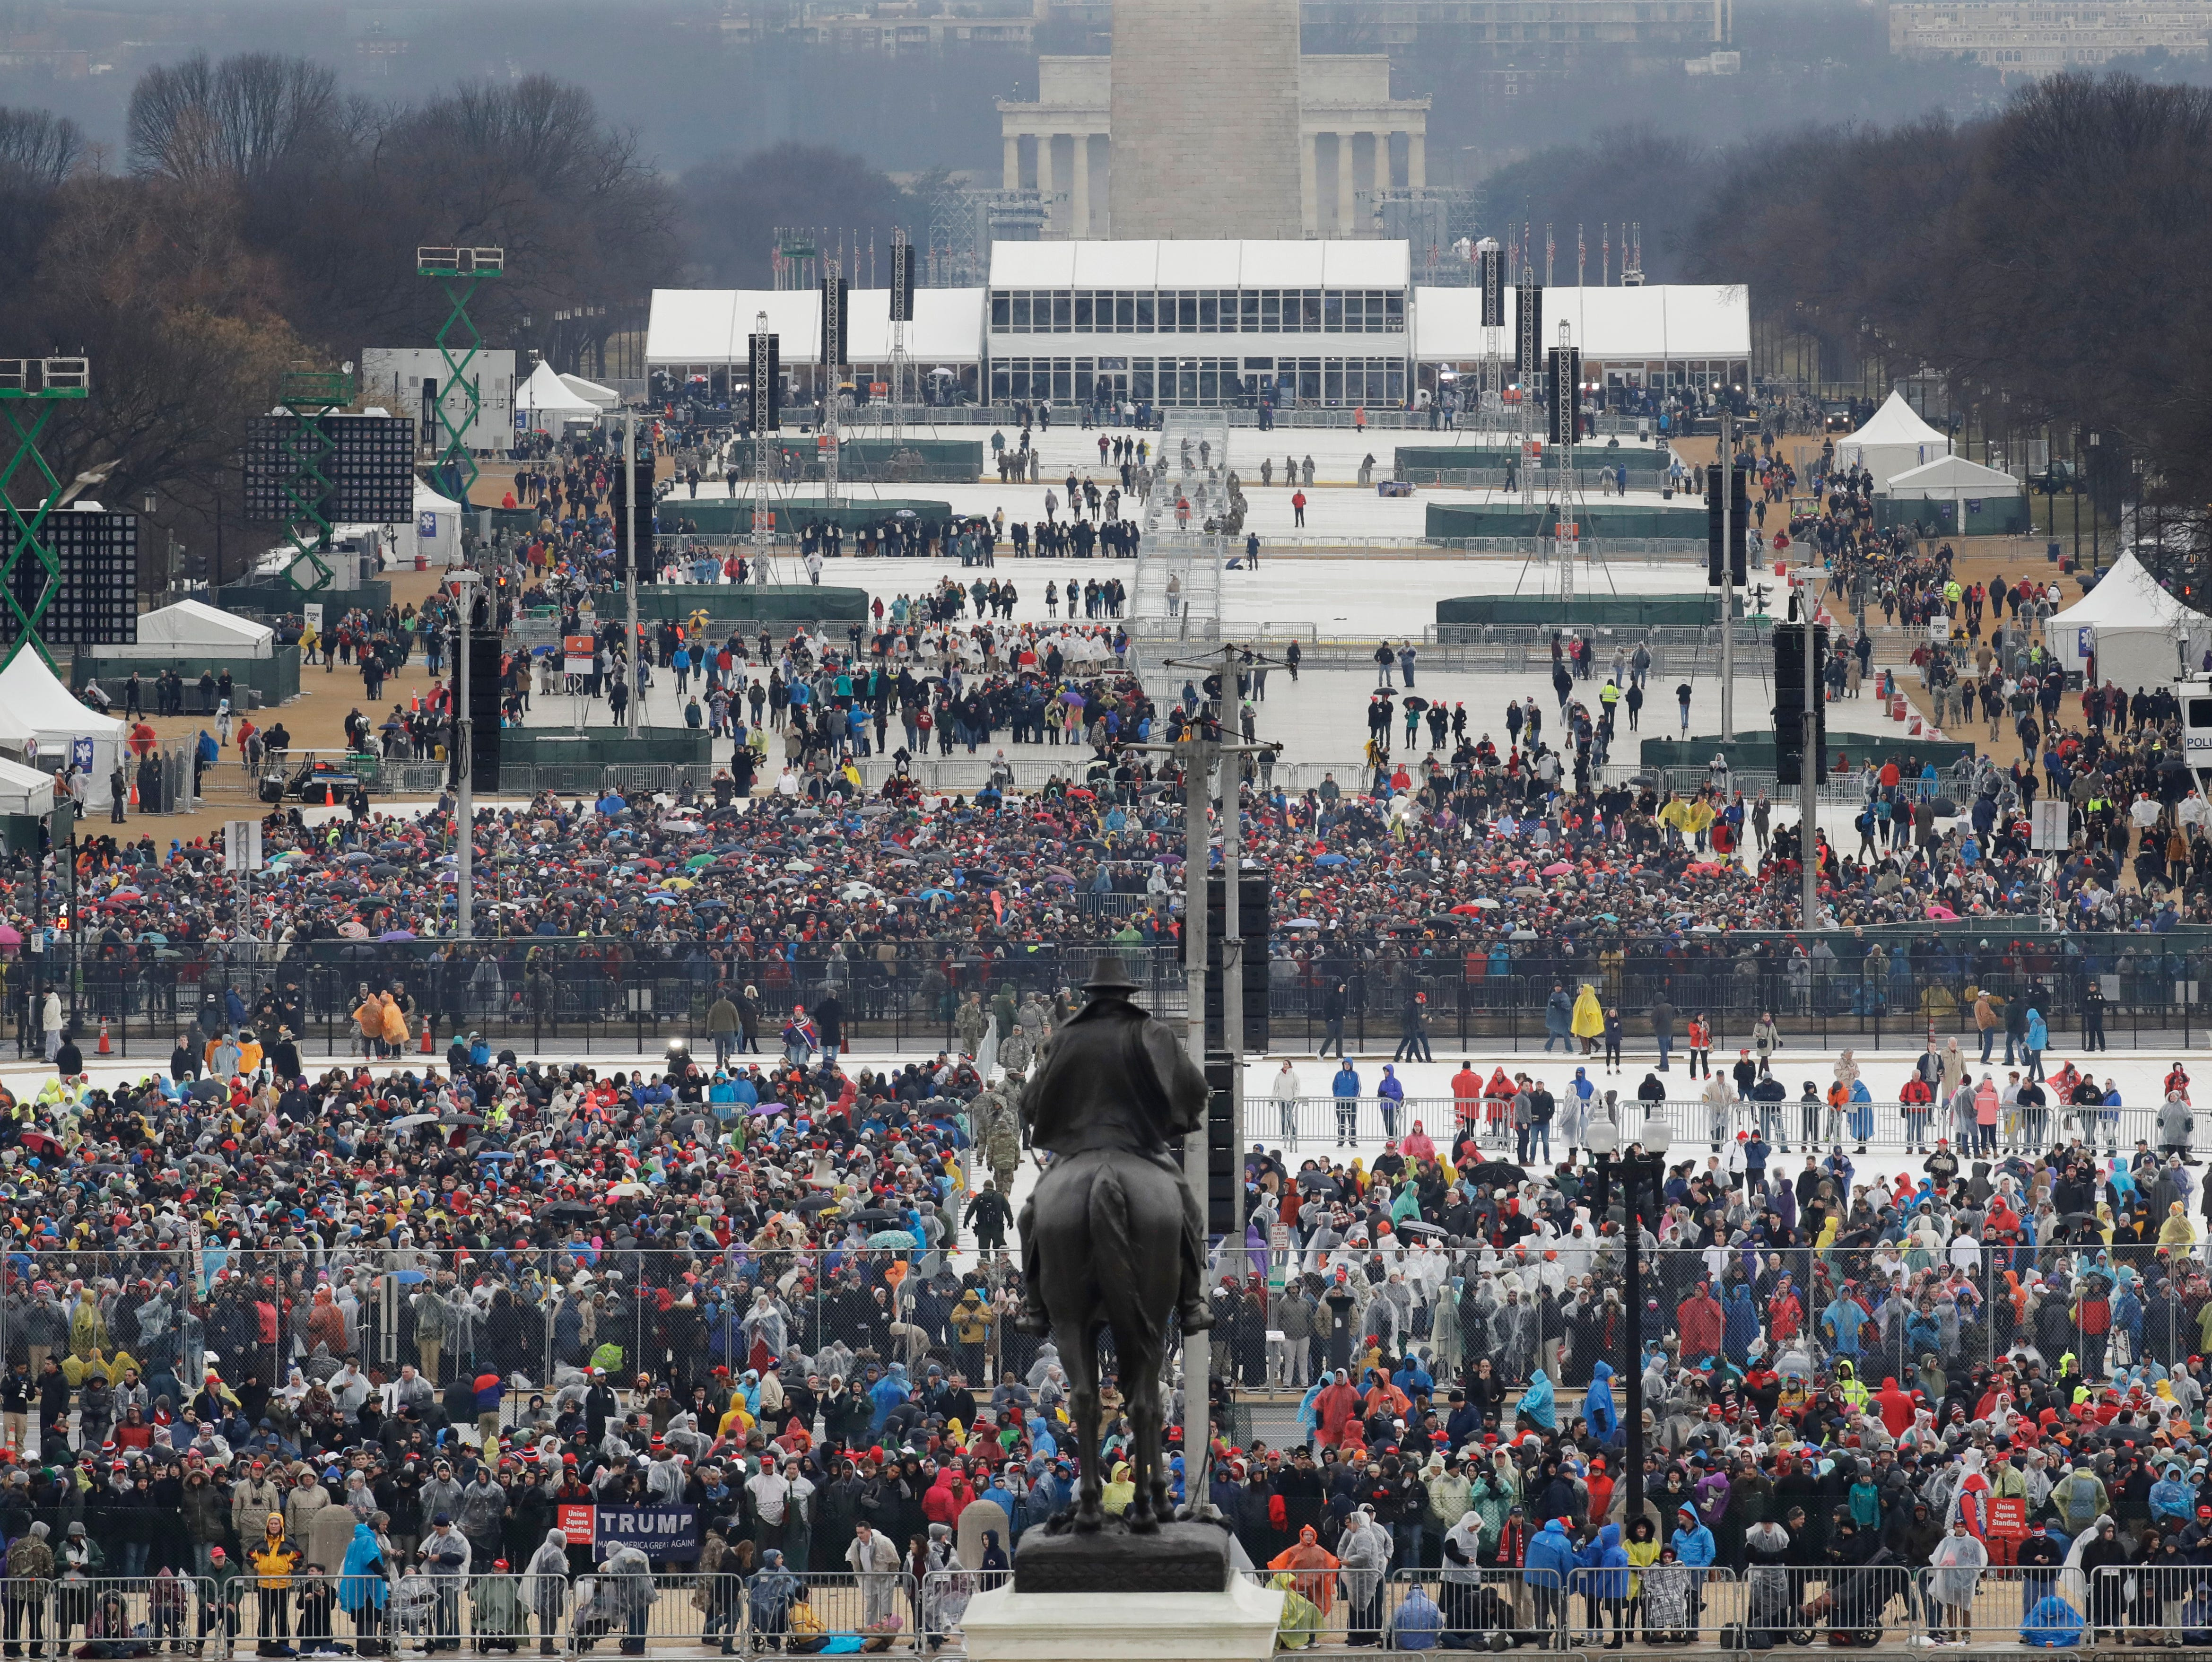 Report: Photos of Trump's inauguration were edited to seem like crowd was larger